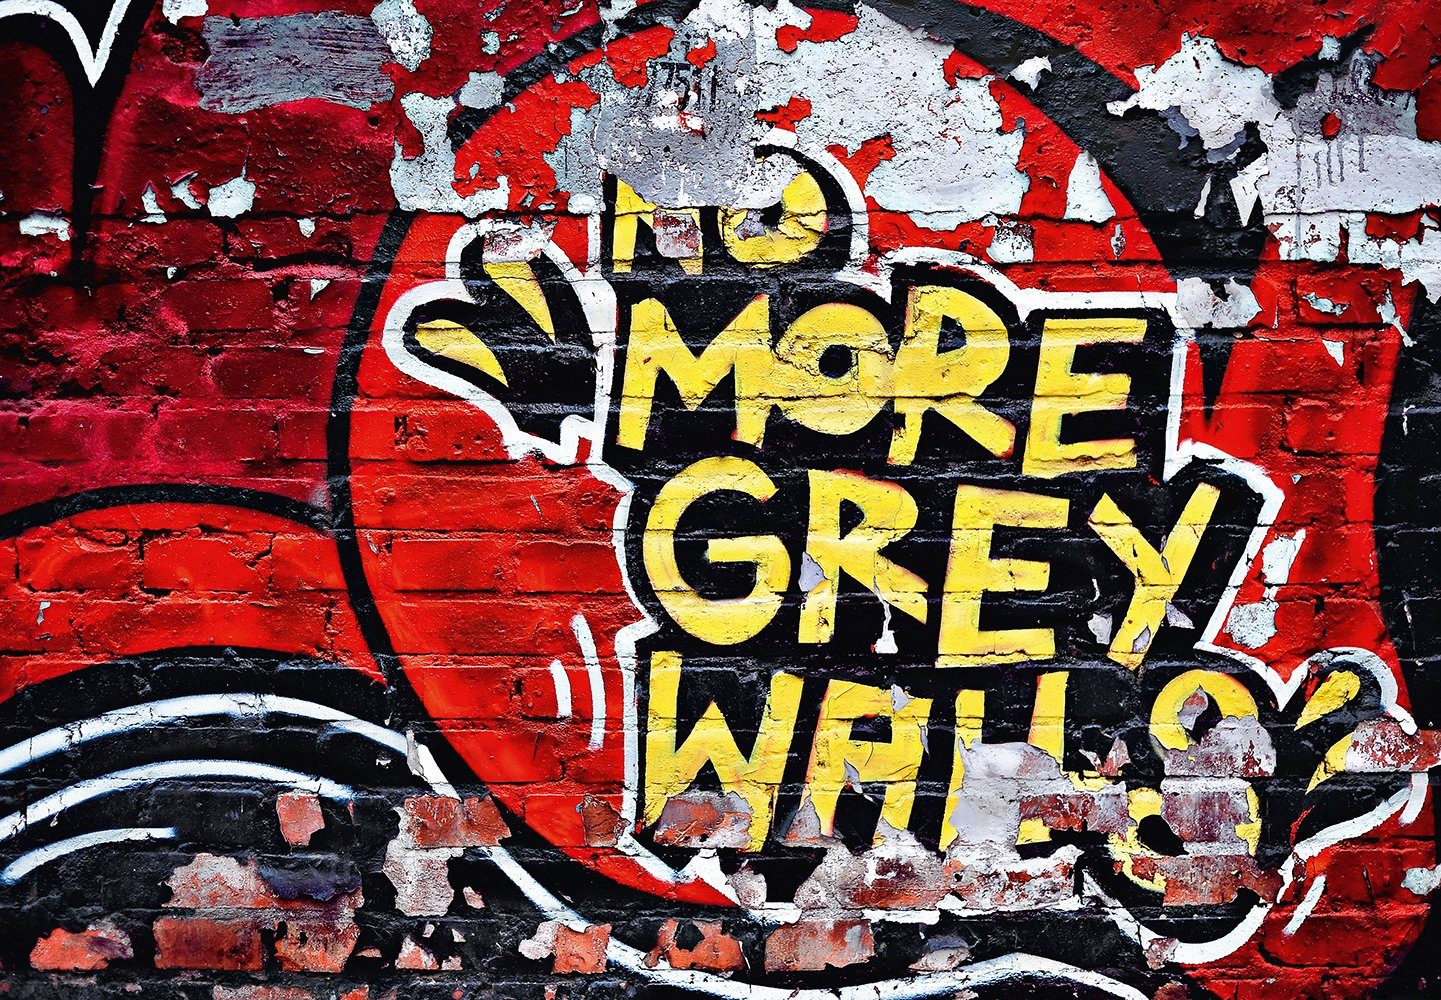 Fototapete »No More Grey Walls«, 8-teilig, 366x254 cm